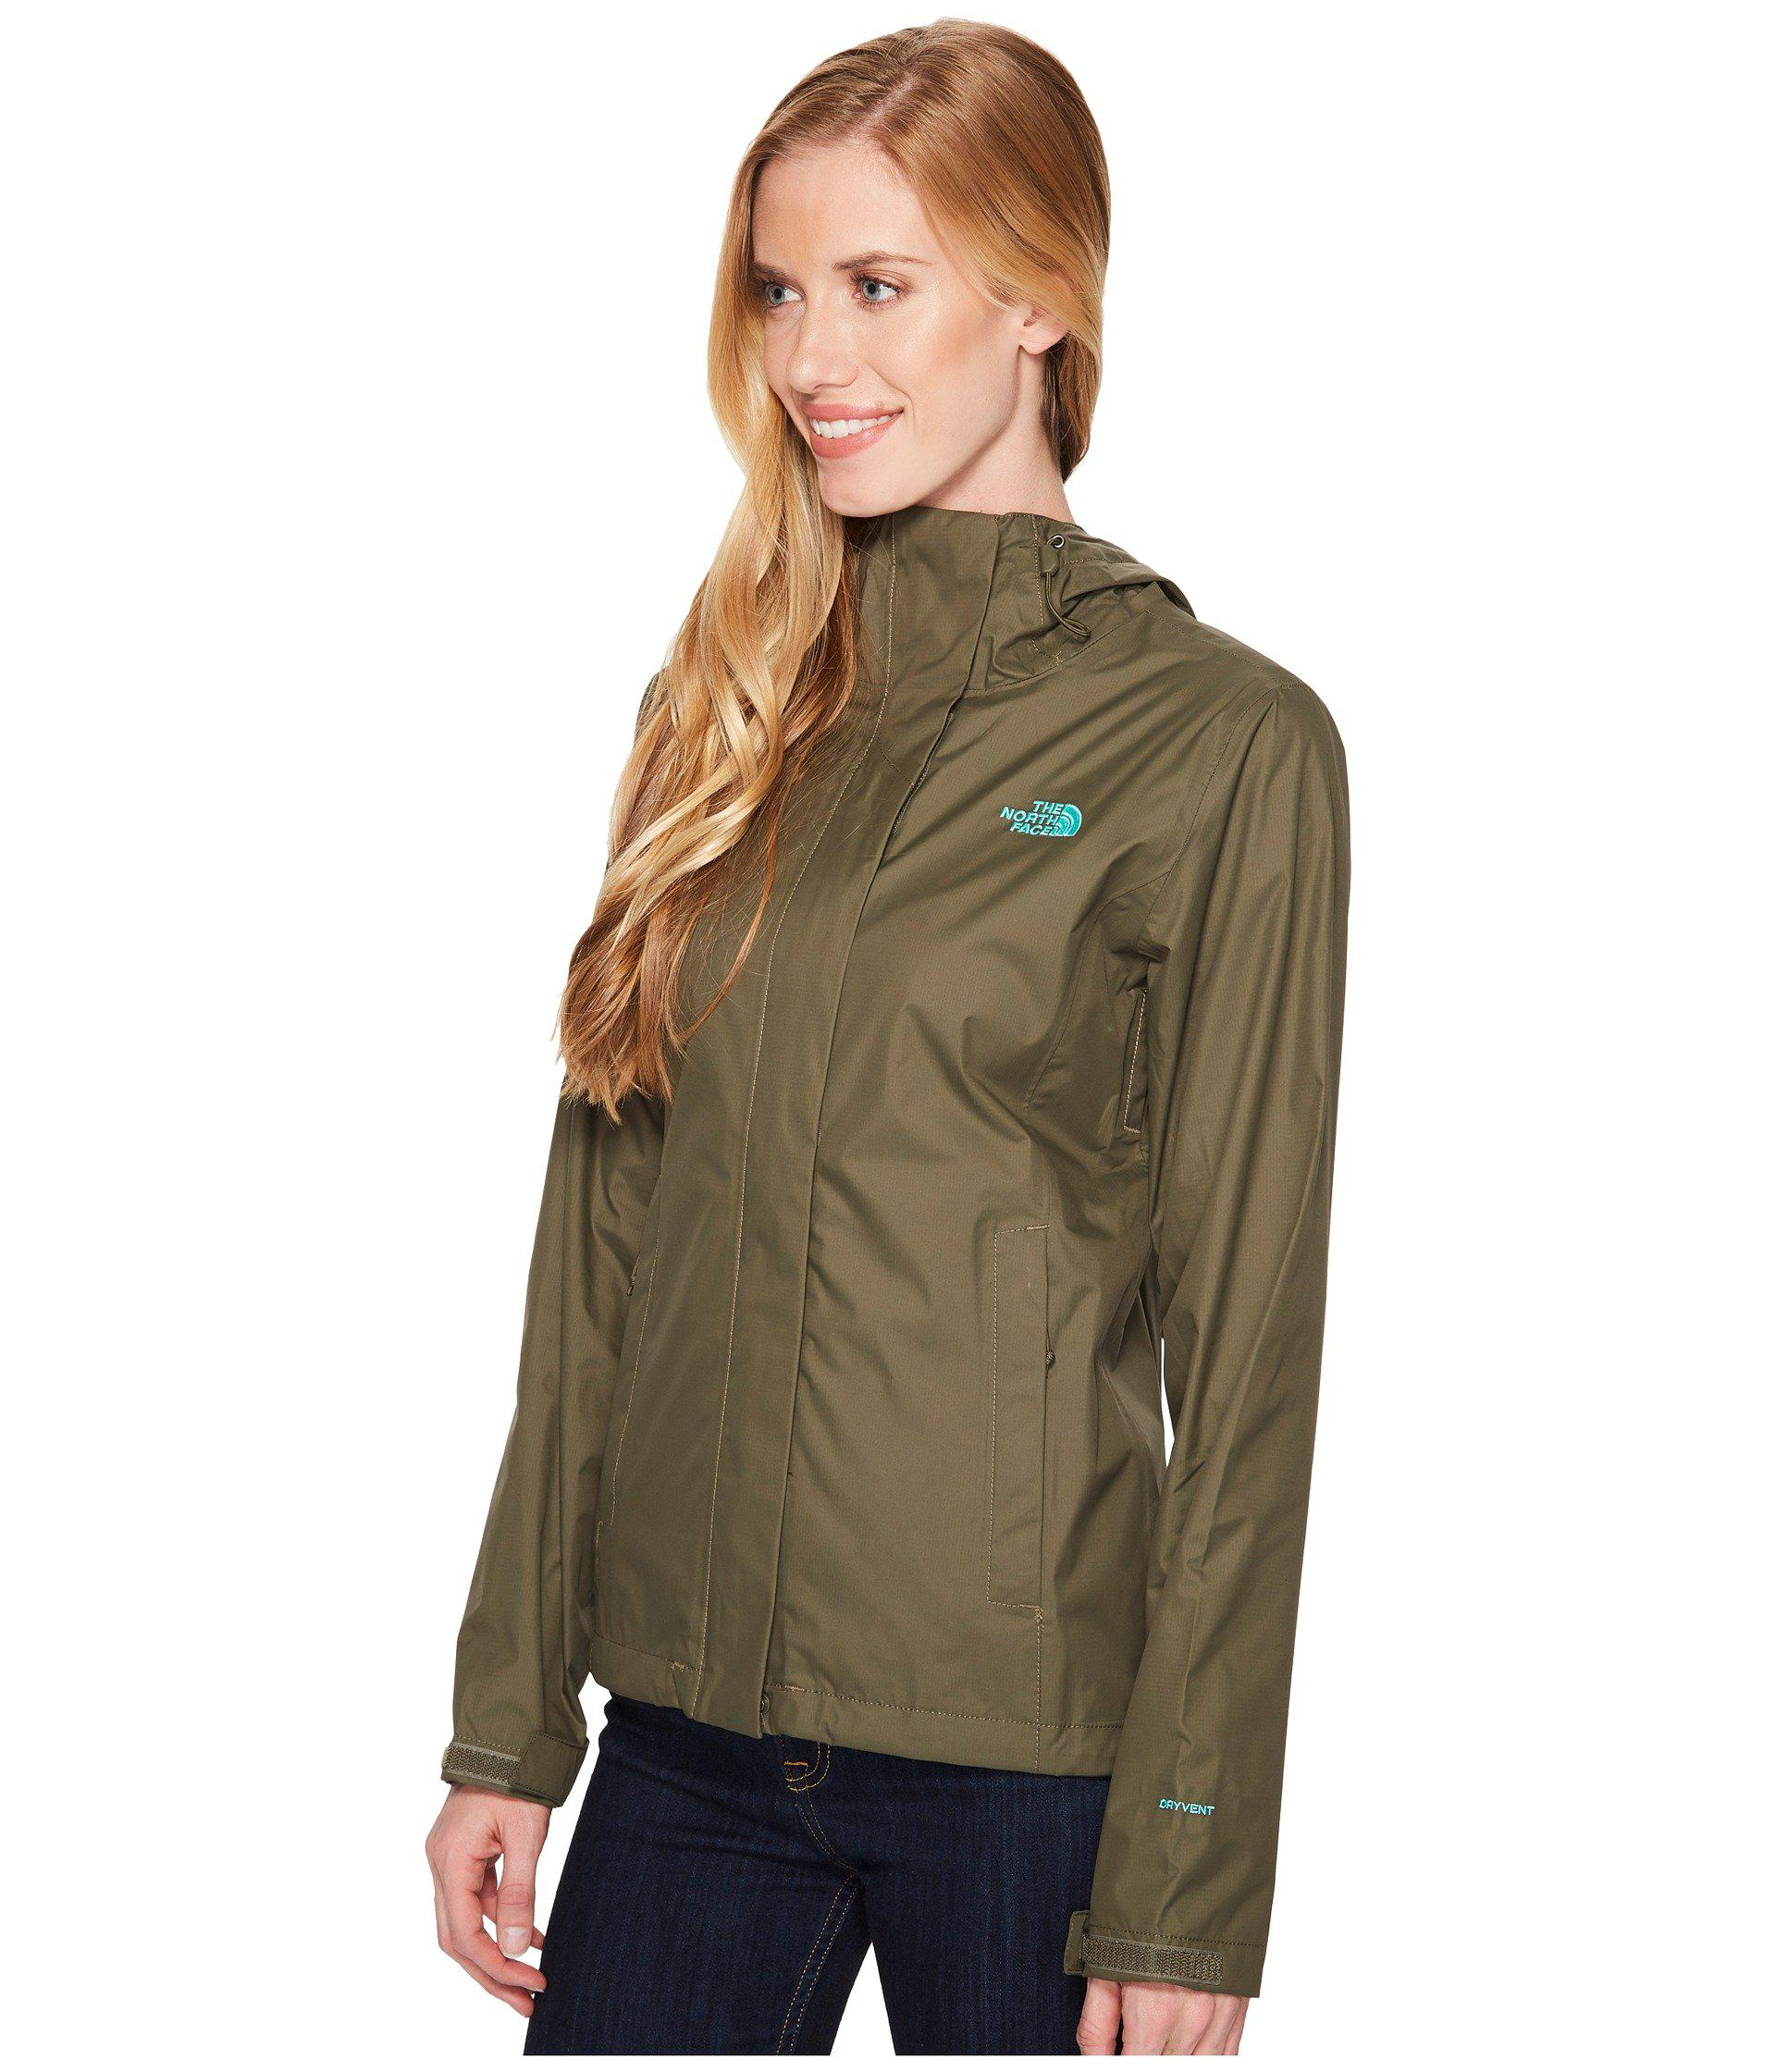 Lyst - The North Face Venture 2 Jacket (fig Heather) Women s Coat in ... 685246aaf